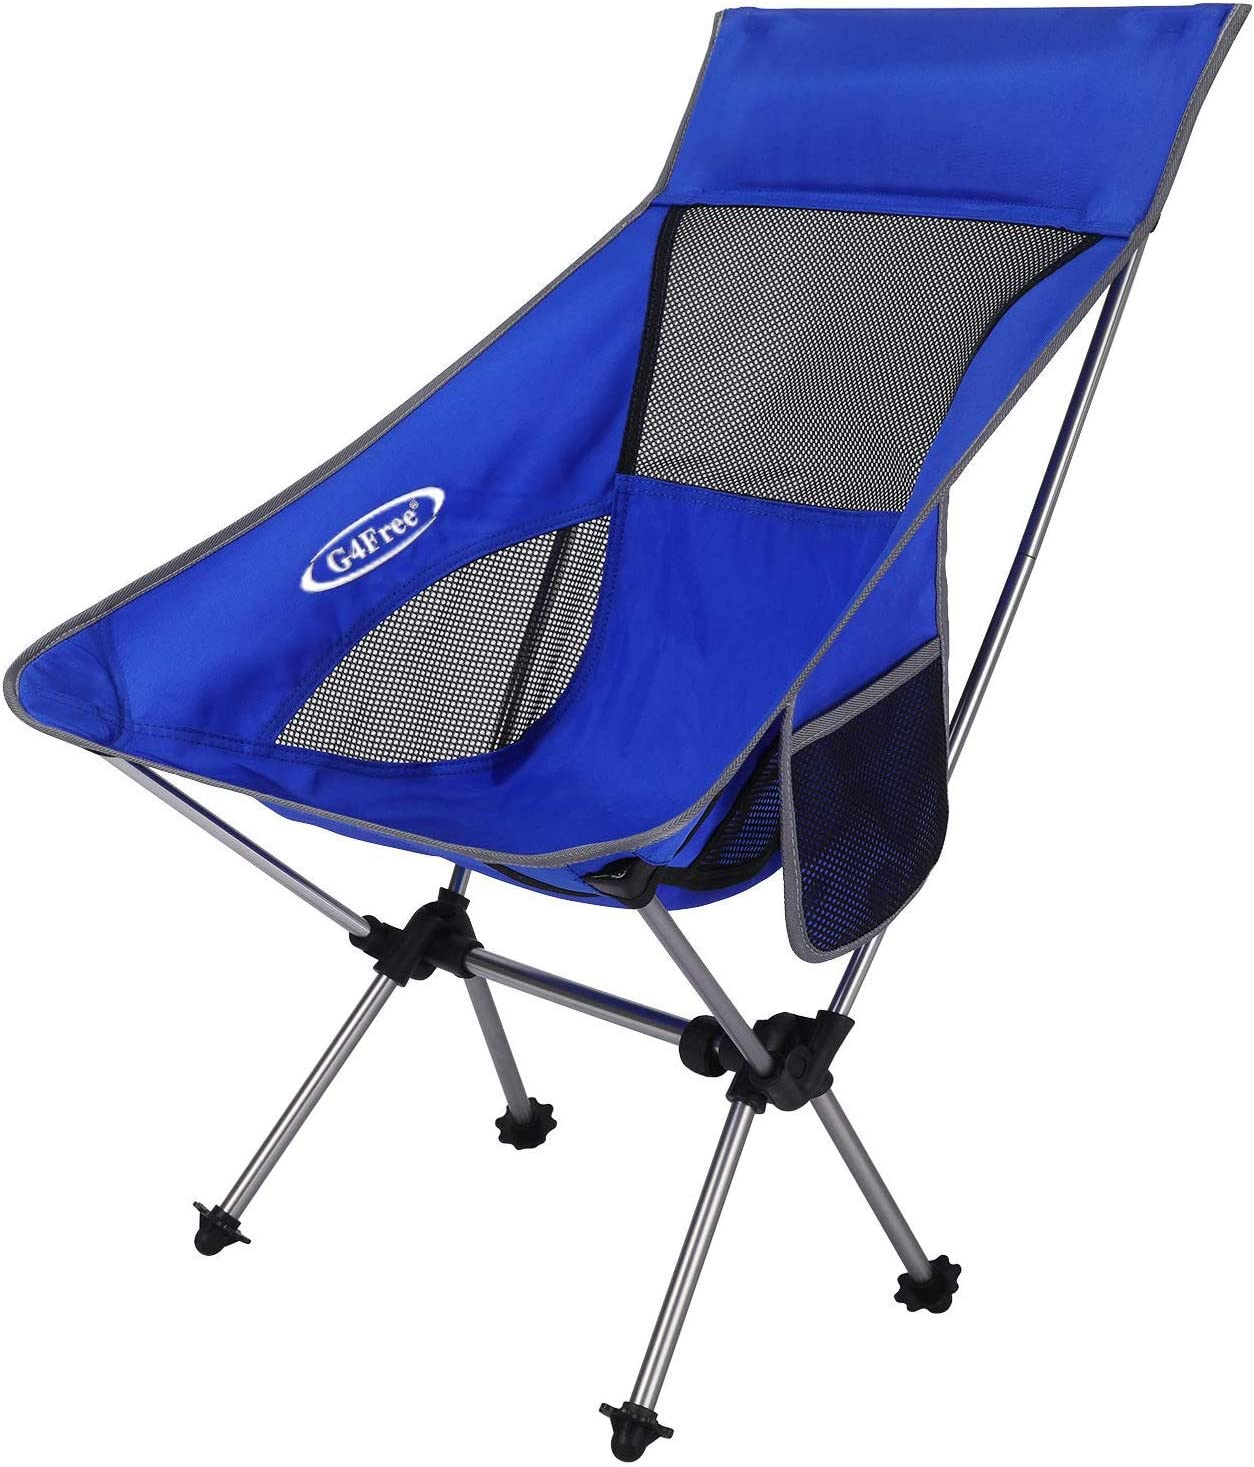 G4Free Portable Camping Chairs, Medium Size Ultralight Folding Compact Chair Heavy Duty 265lbs with Carry Bag for Outdoor Hiking Backpacking Picnic Beach